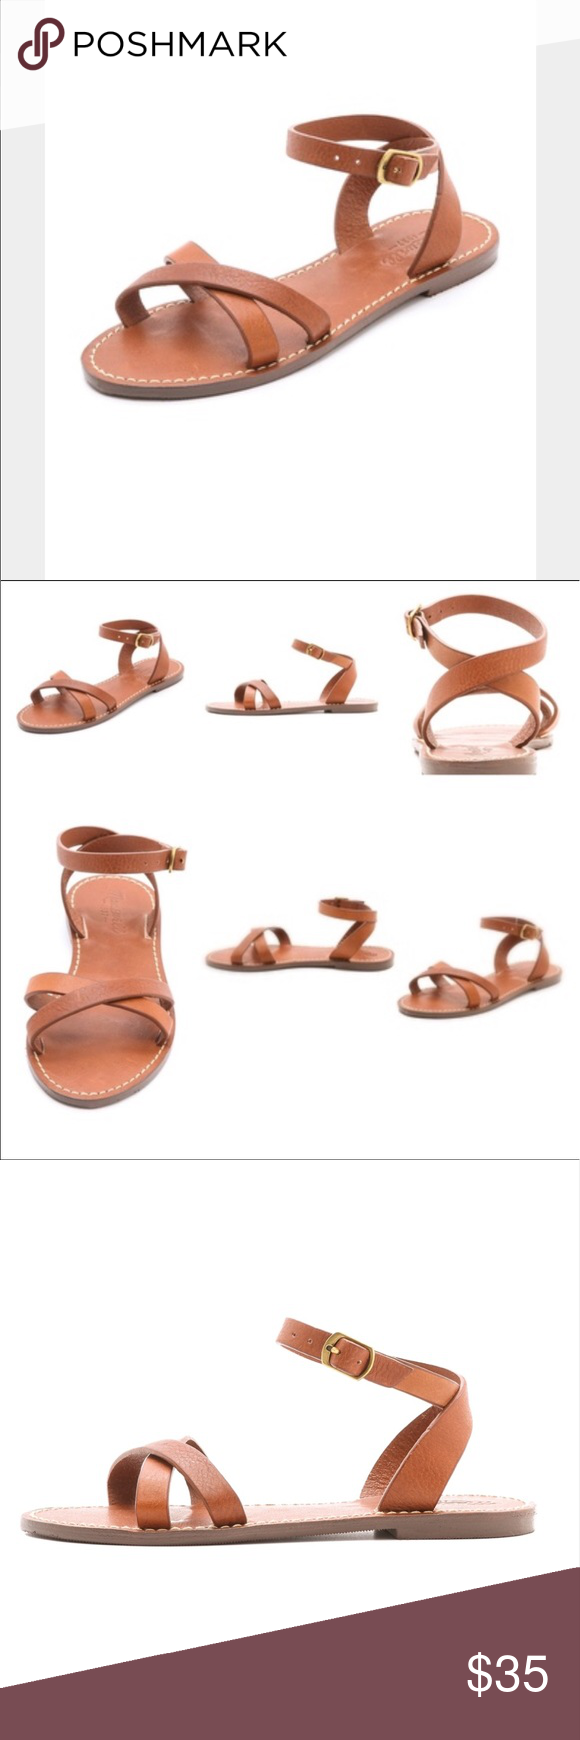 Madewell Criss Cross Boardwalk Sandal size 9 Madewell Criss Cross Boardwalk Sandal size 9. Worn once. Very good condition. Brown leather. These sandals go with everything. Super comfortable leather. Madewell Shoes Sandals